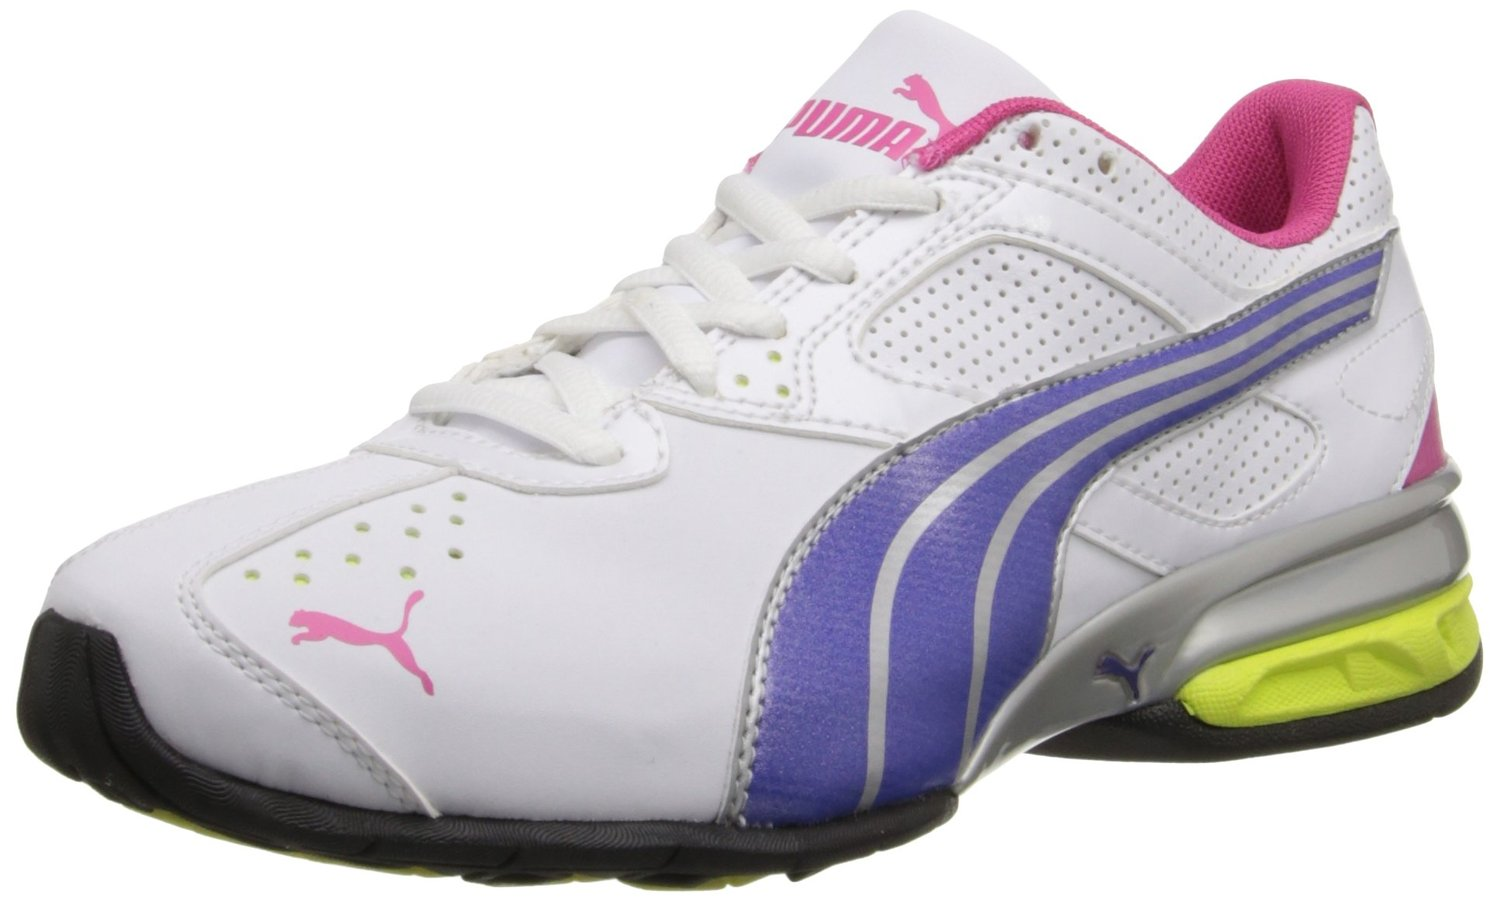 PUMA Tazon 5 Cross-Training Shoe WhiteSpectrum BlueBeetroot Purple 58c7225ce